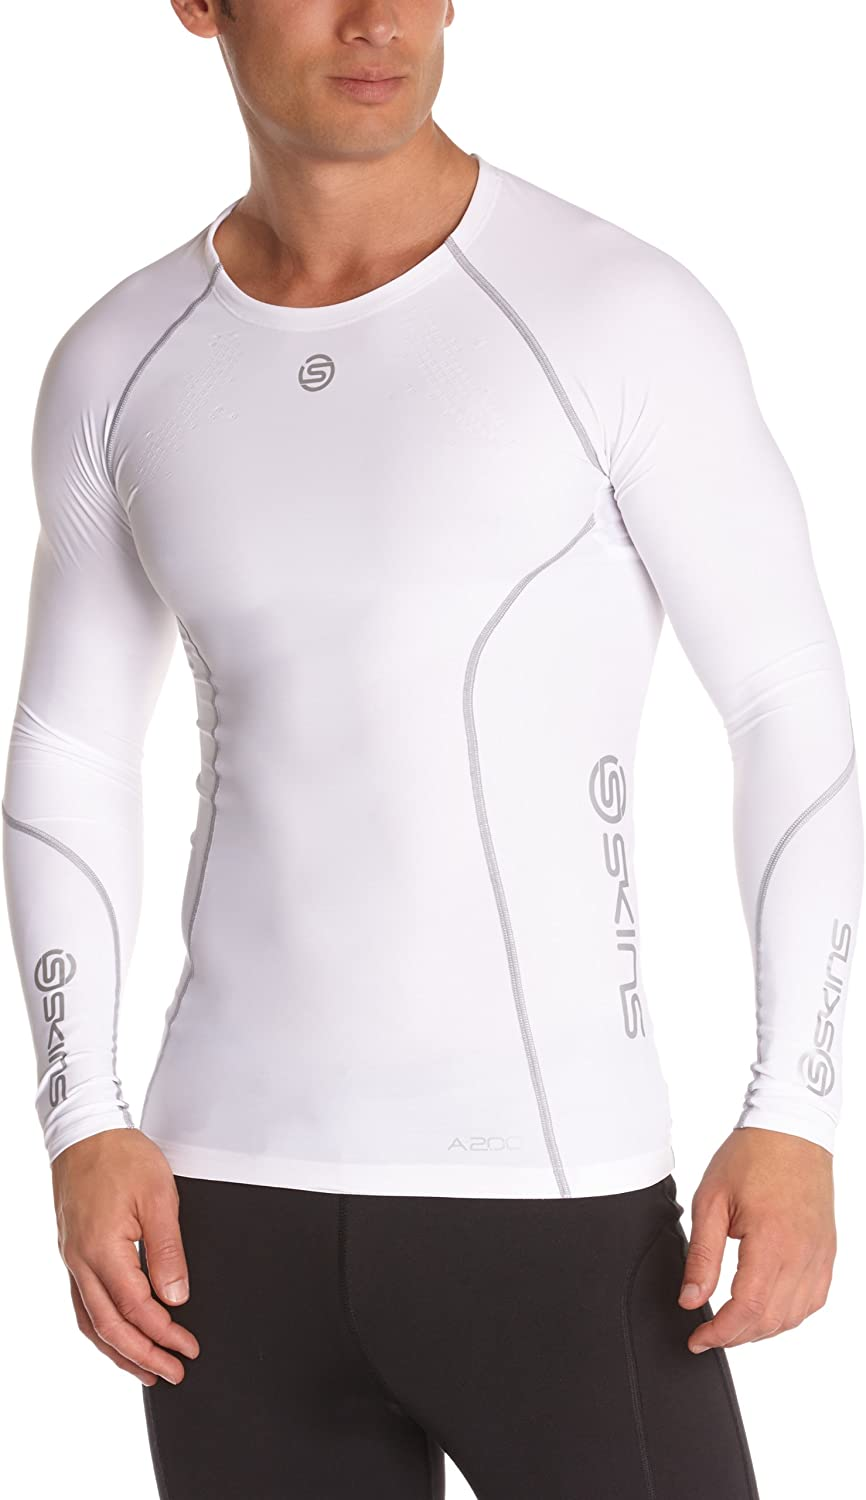 Skins Homme dnamic Team Compression Haut à Manches Longues Blanc Sports Running Gym